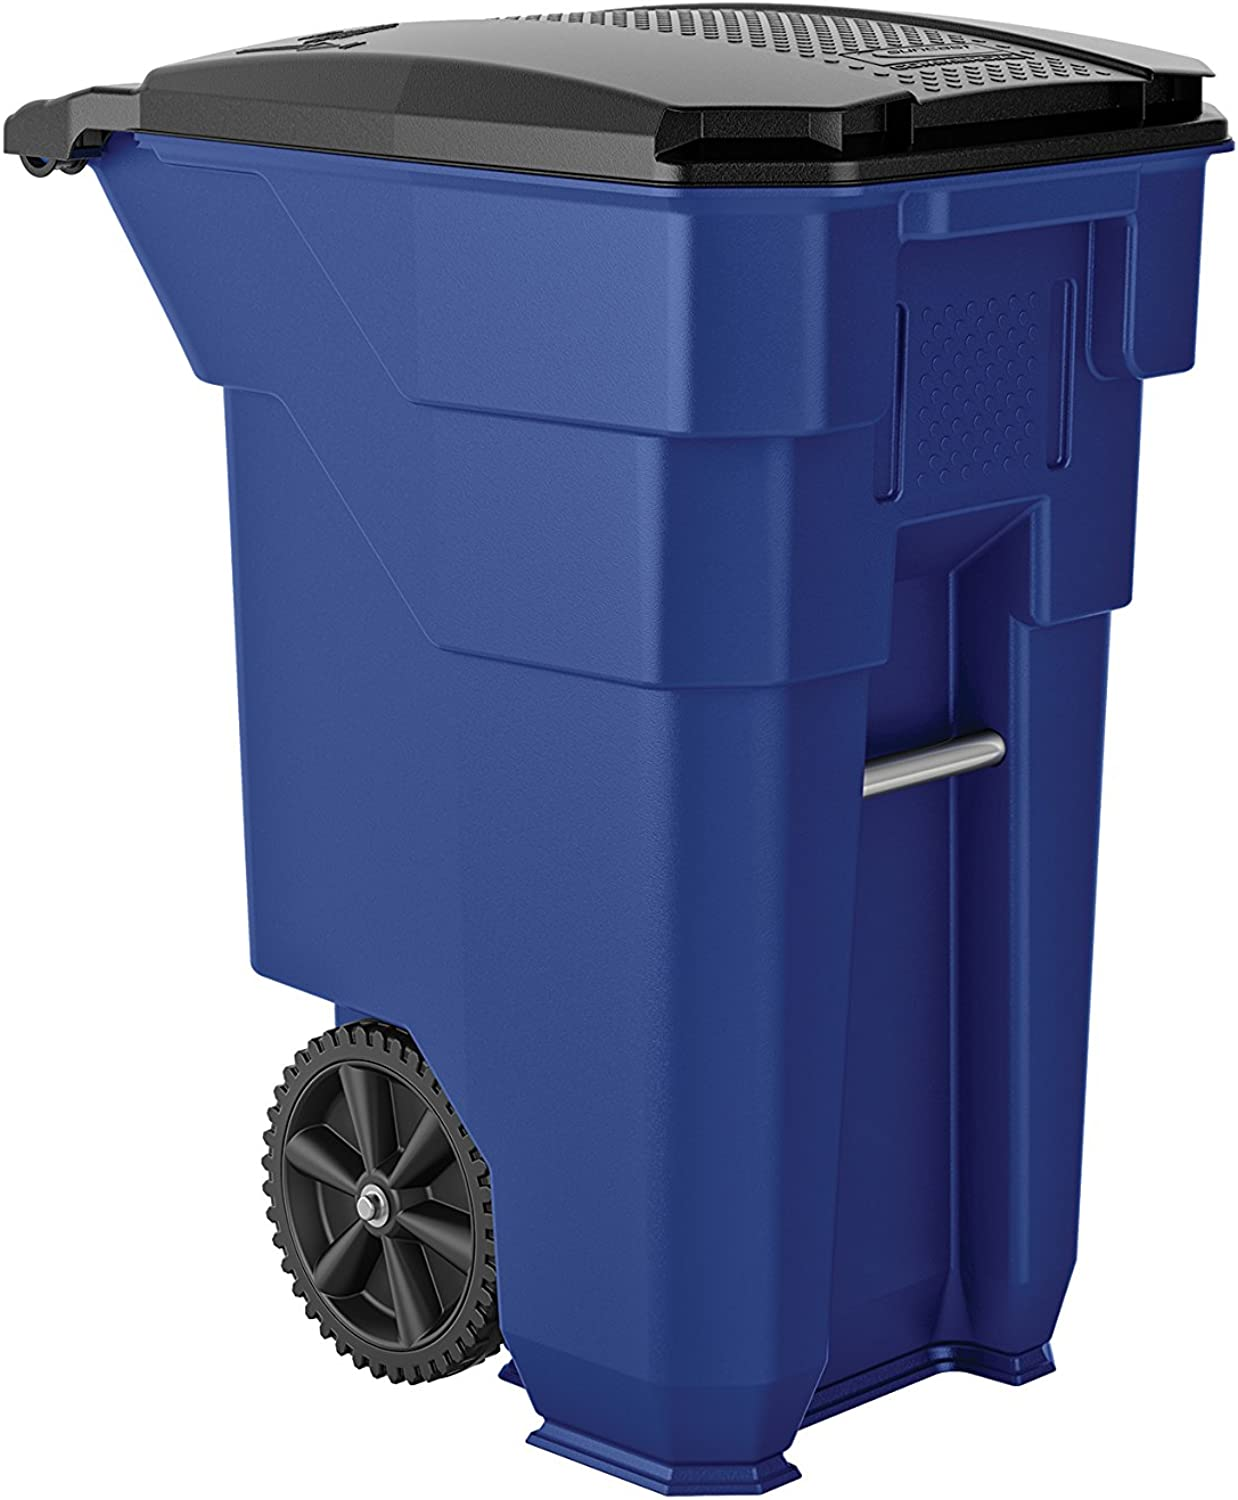 Suncast Commercial BMTCW50BL Wheeled Trash Can, 38.5  Height, 23.5  Width, 50 gal Capacity, Plastic, bluee